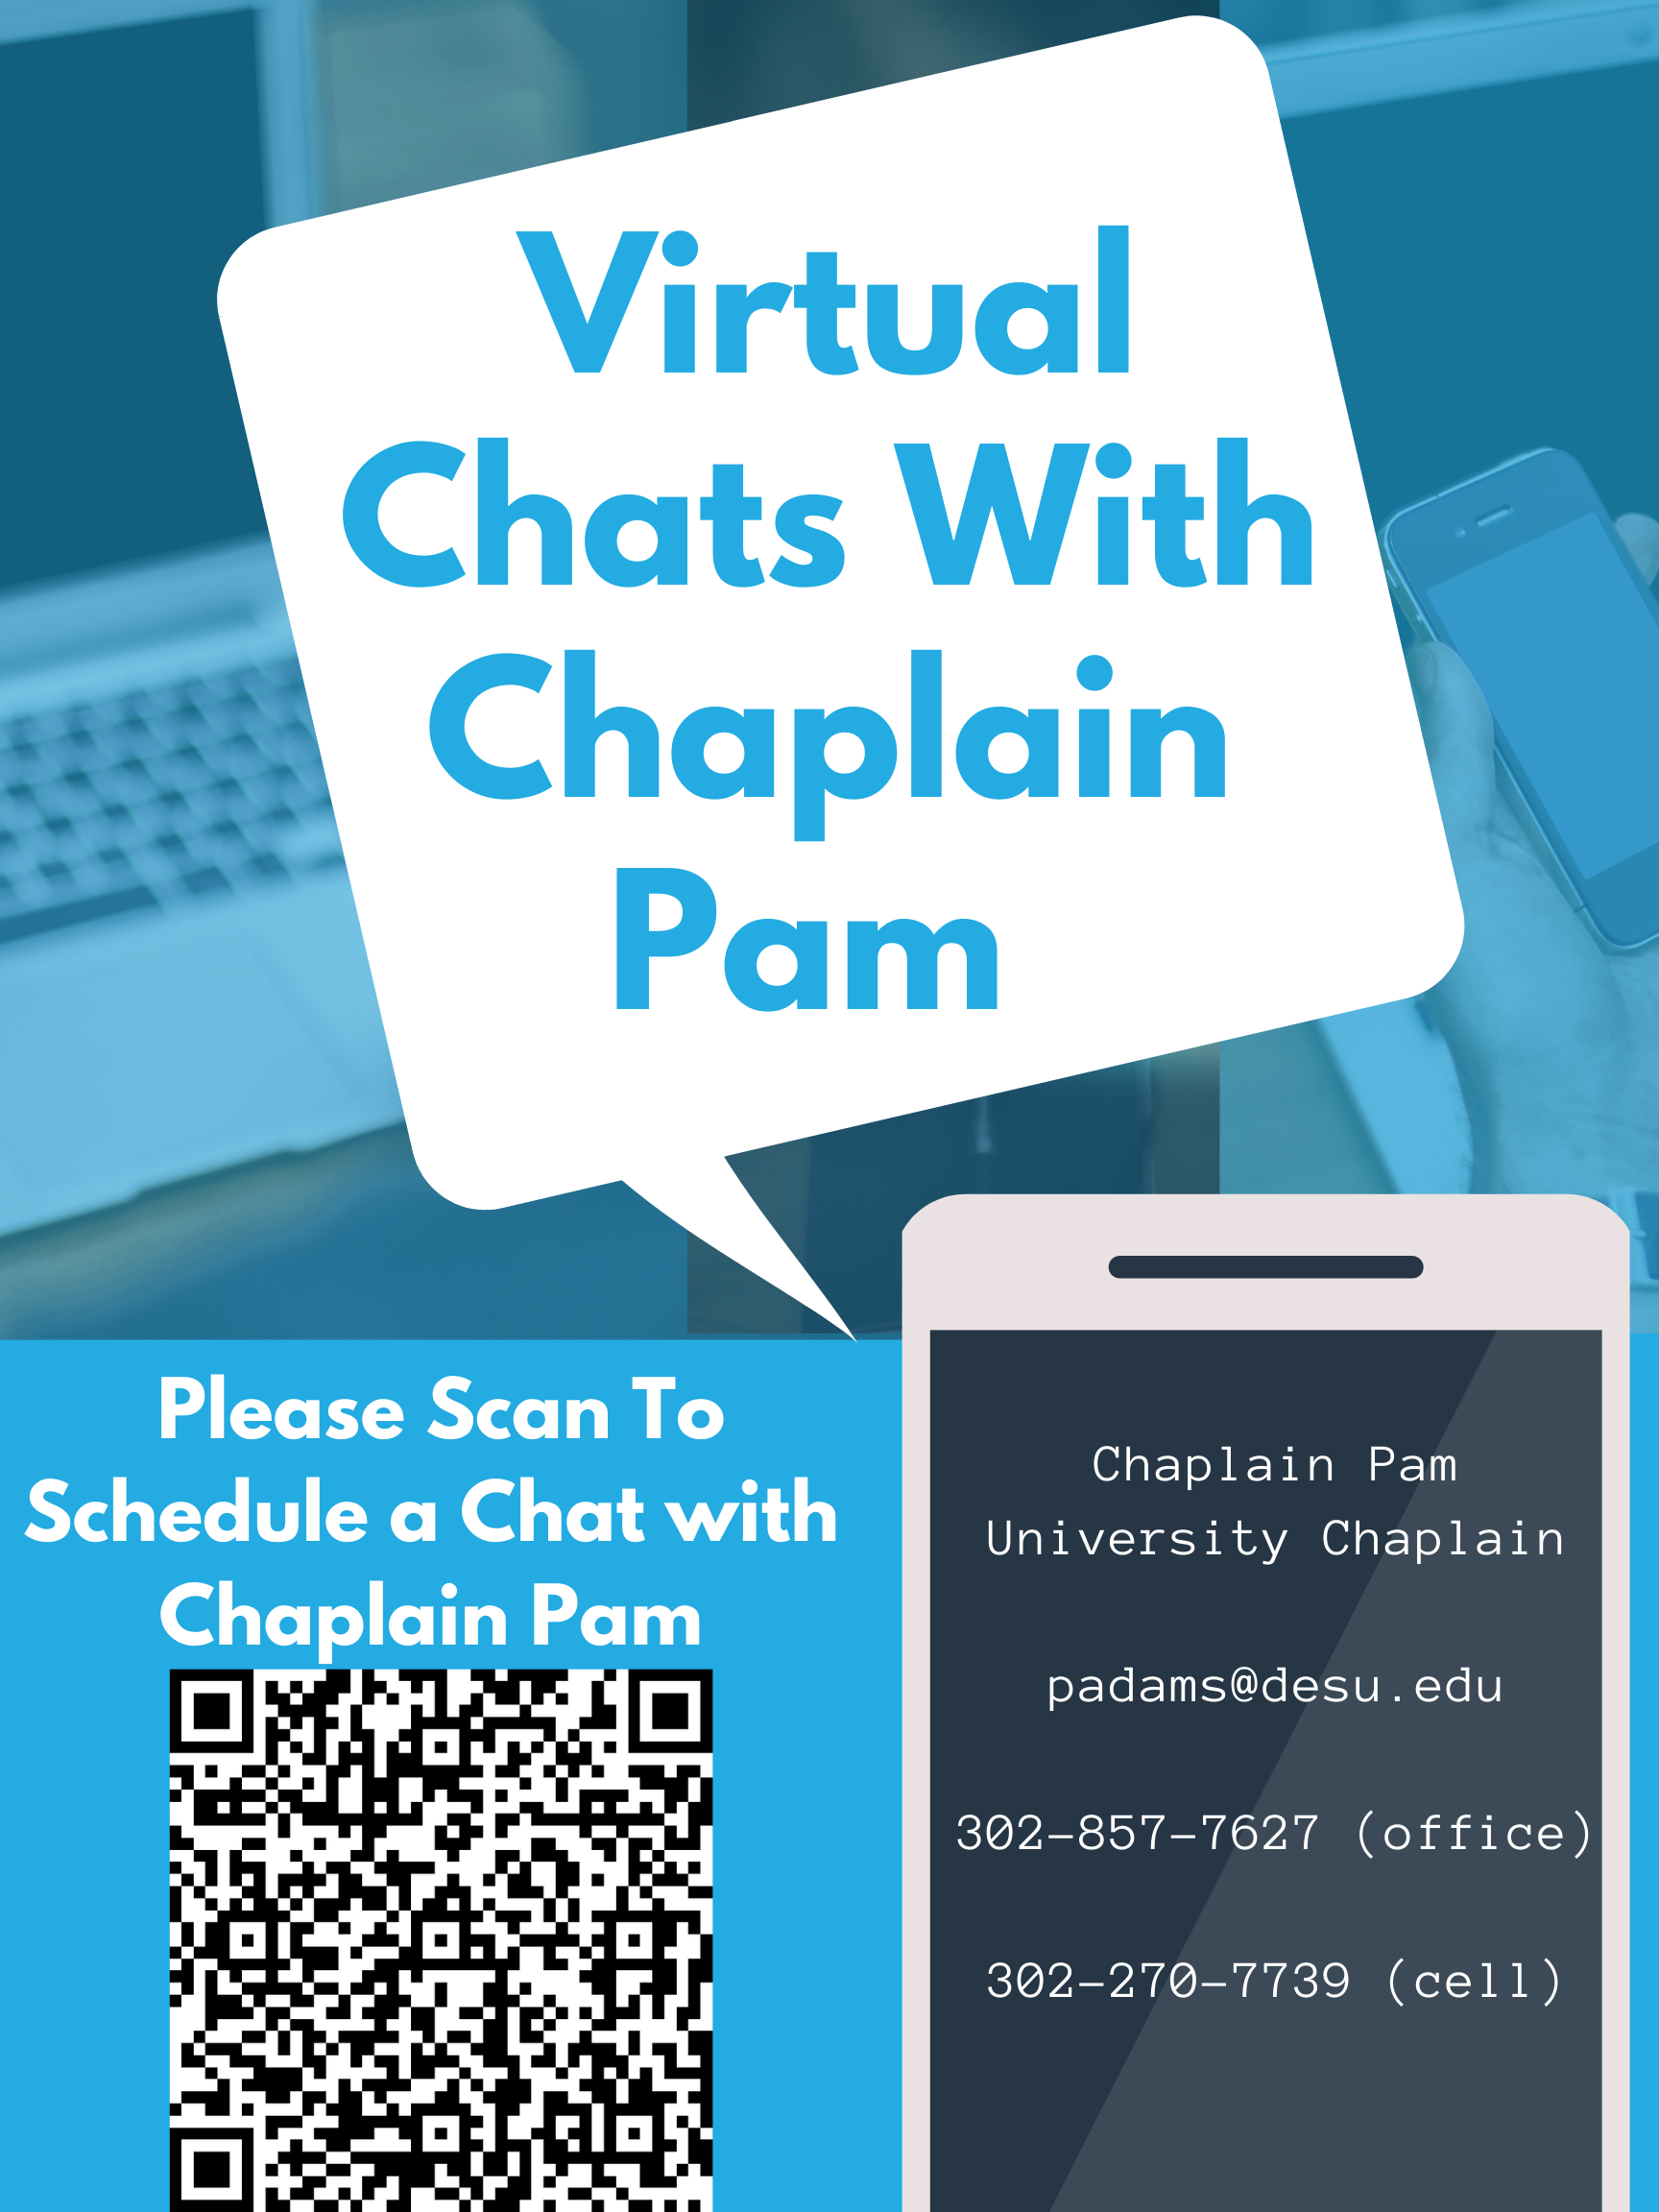 chats with chaplain